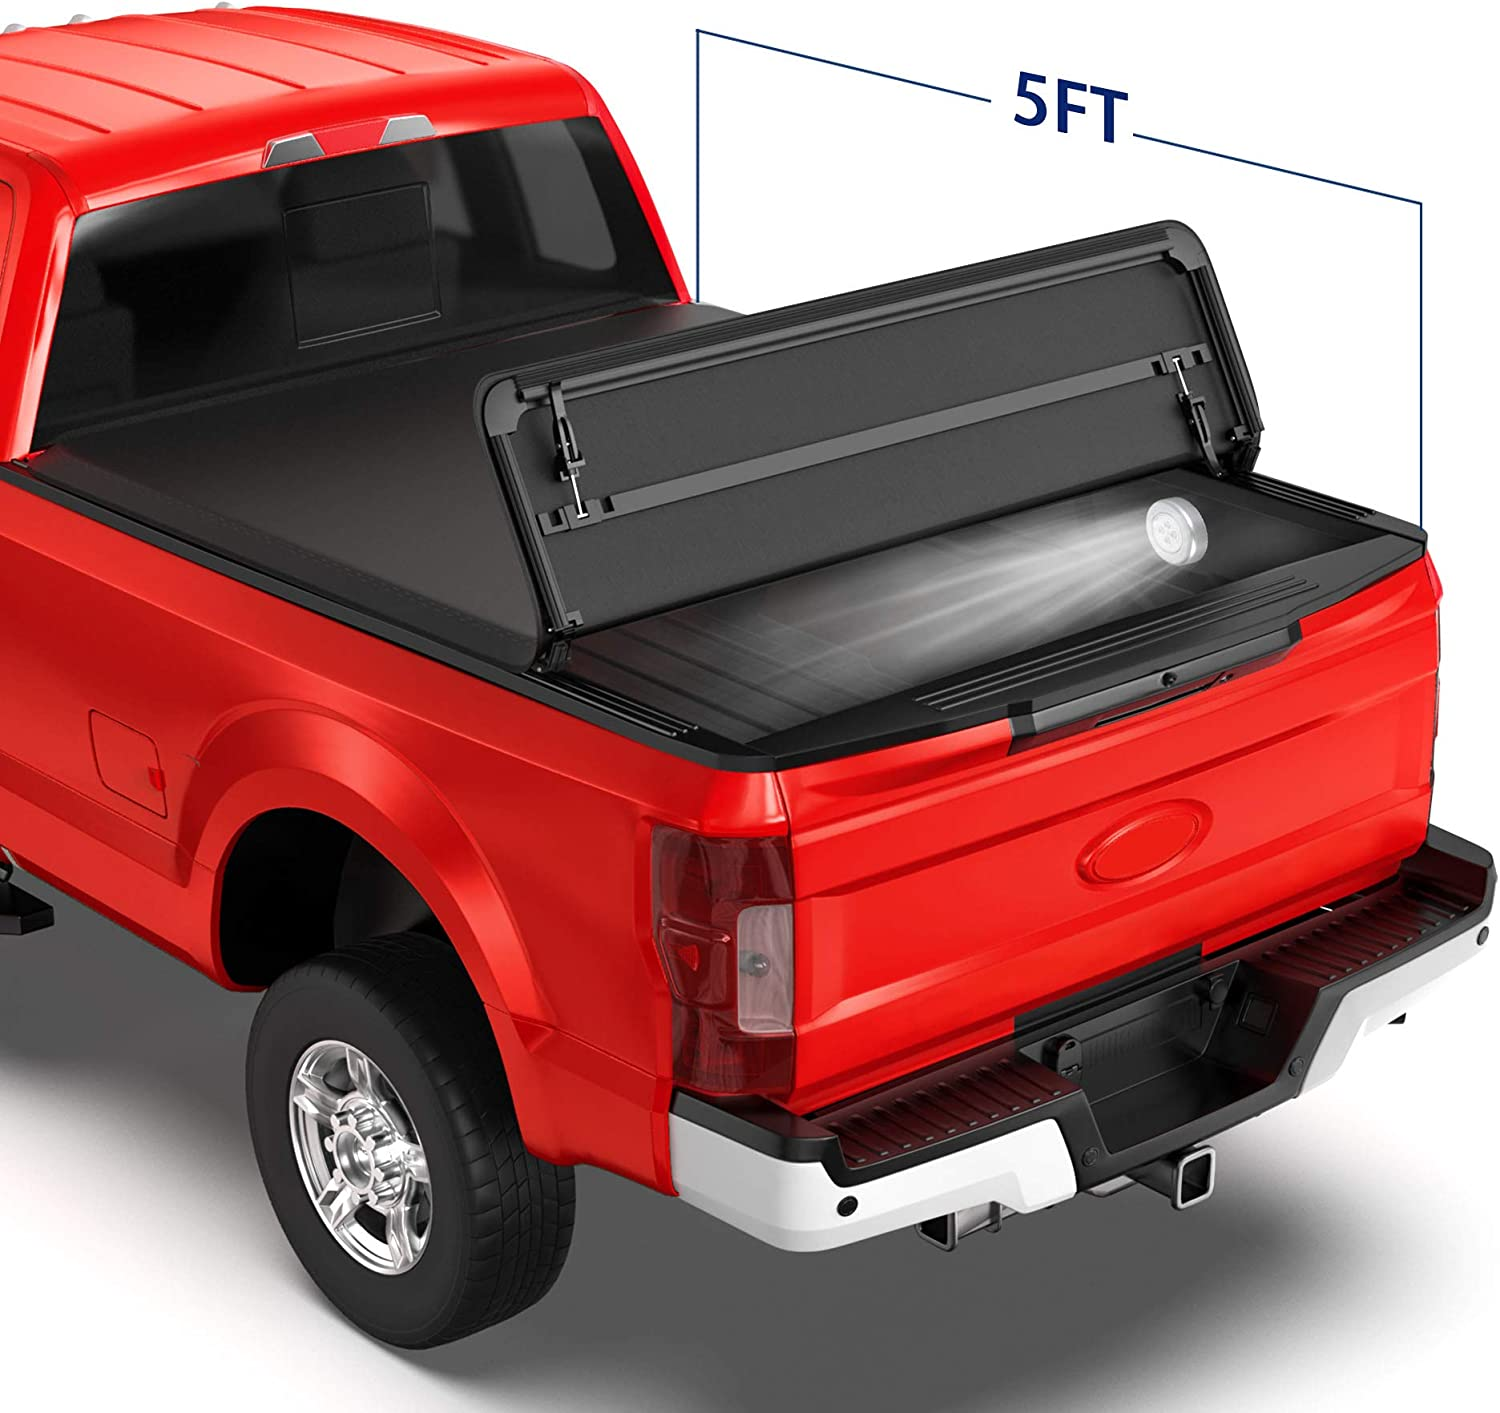 MOSTPLUS Tri-Fold Soft Folding Jeep Gladiator 2020-21 Bed Cover